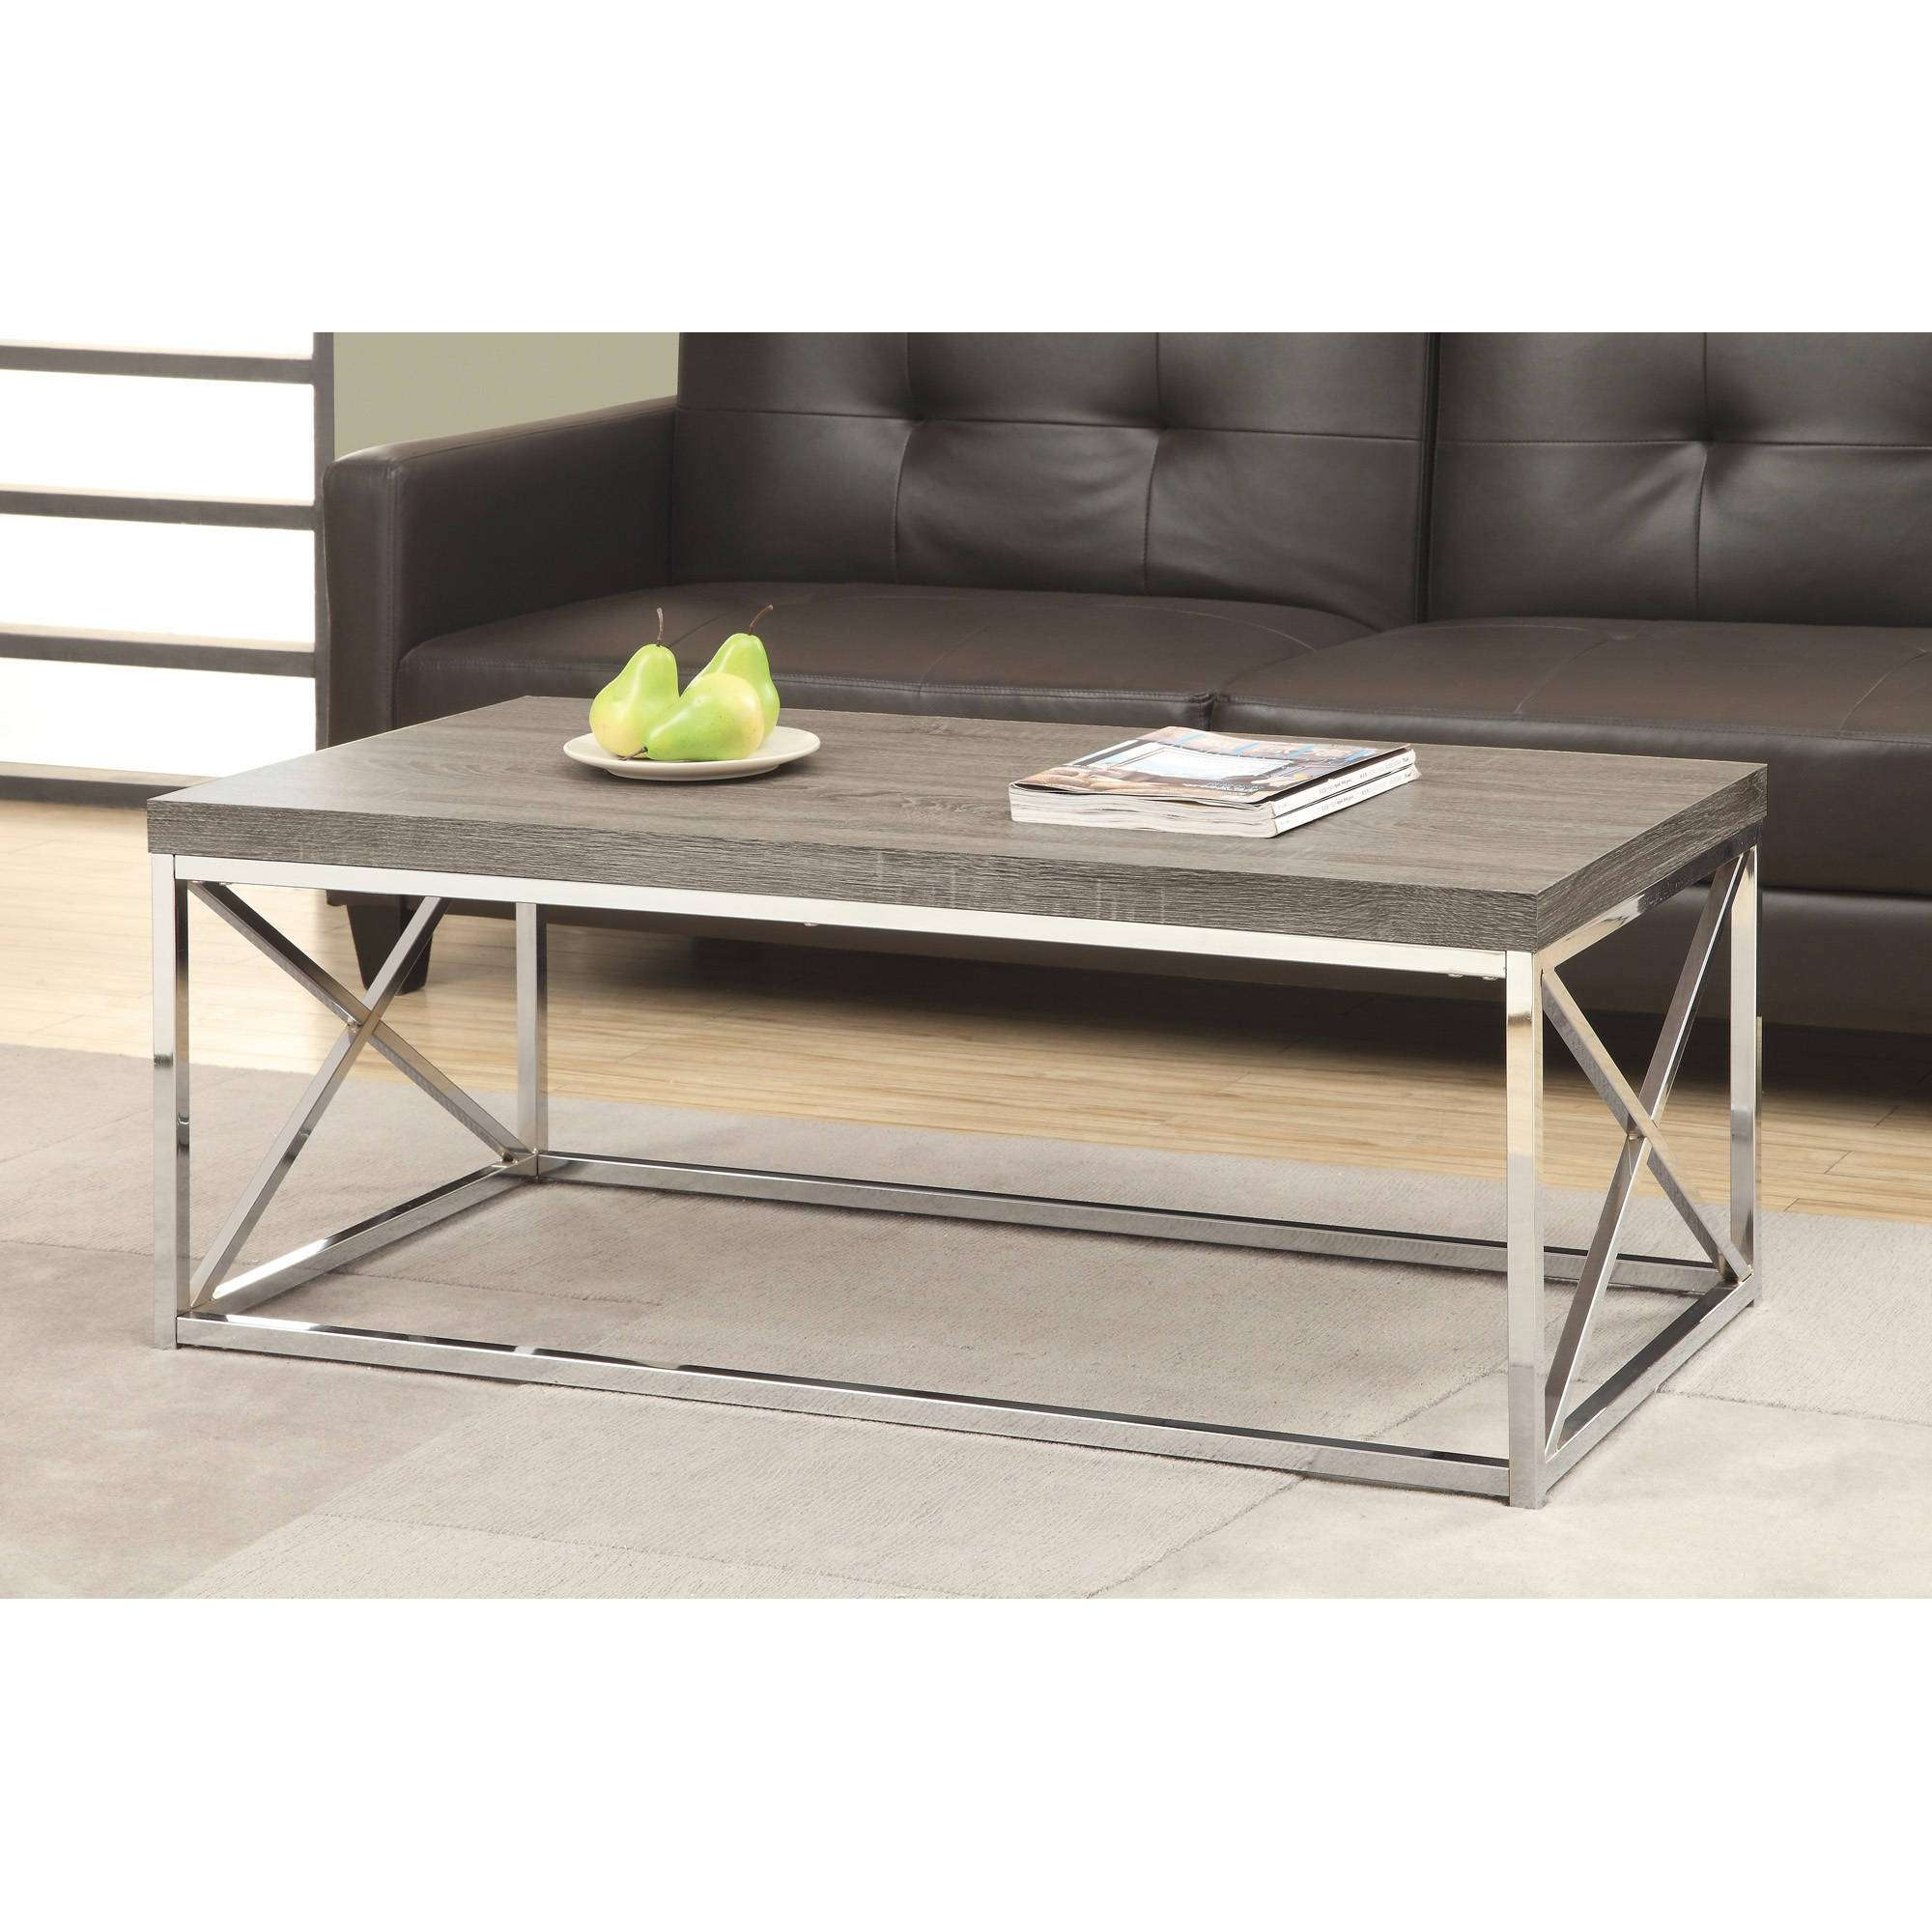 Preferred Chrome And Wood Coffee Tables Within Coffee Tables : Pe Perspective Coffee Table Xl Chrome And Wood (View 16 of 20)